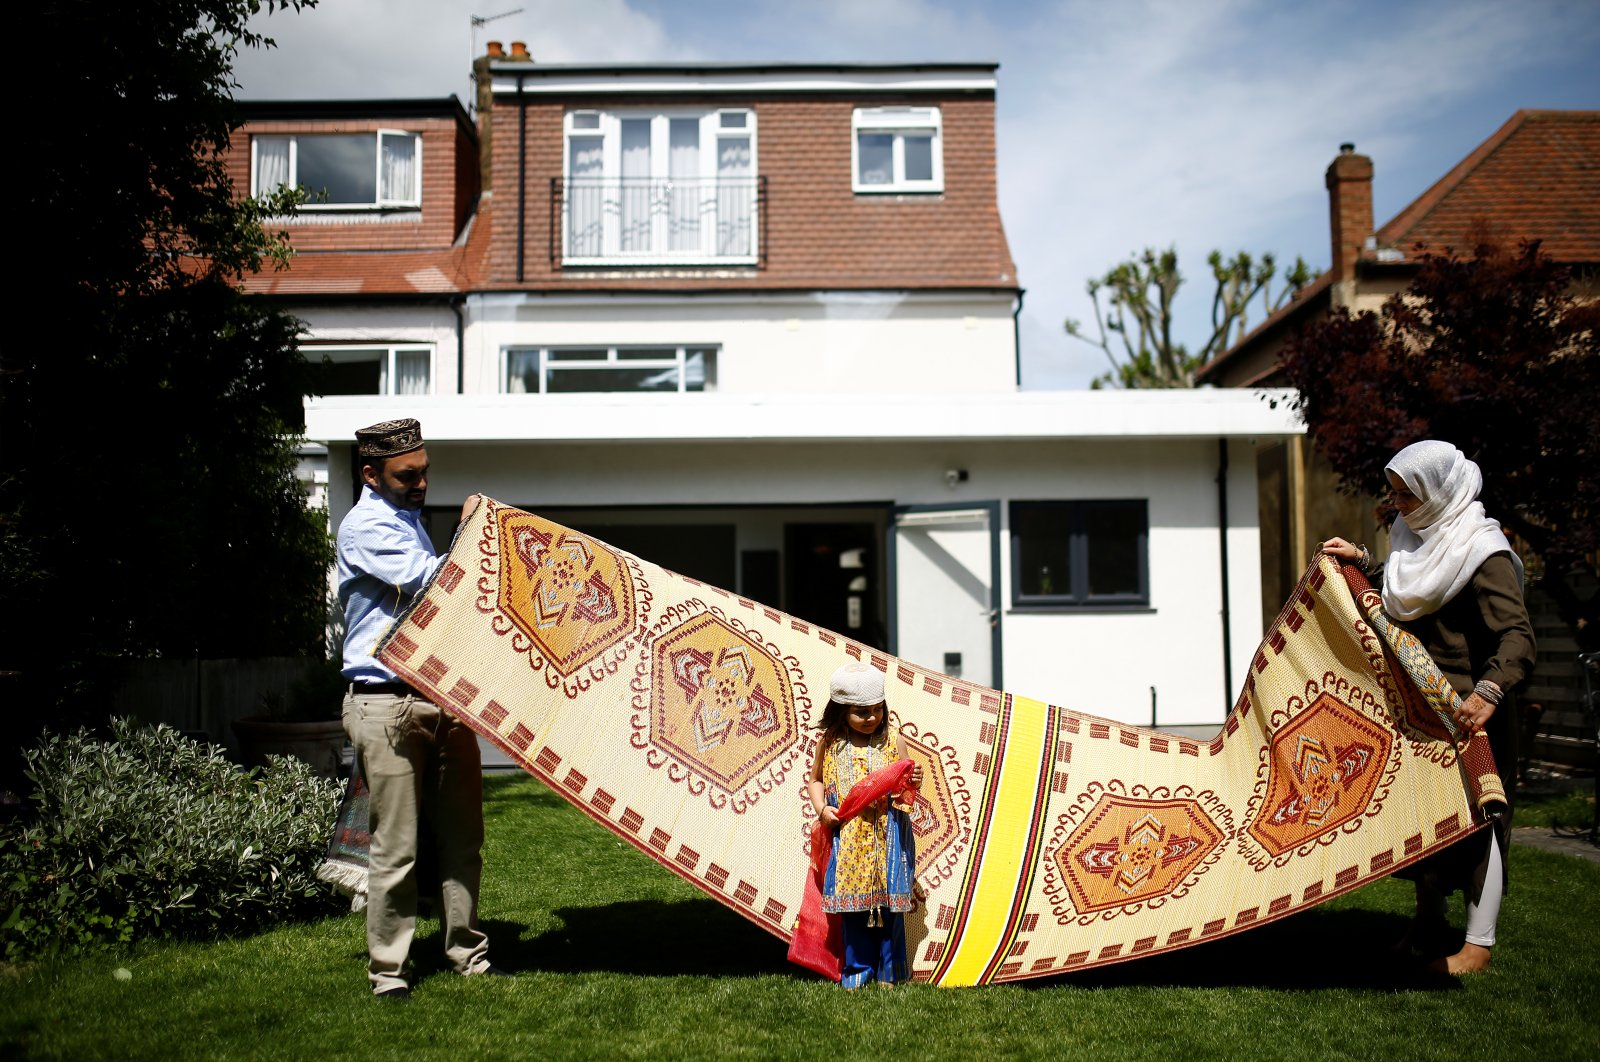 A Muslim family sets up prayer mats in their home garden for the Eid al-Fitr prayers to mark the end of the month of Ramadan following the outbreak of the coronavirus in Surbiton, London, U.K., May 24, 2020. (Reuters Photo)